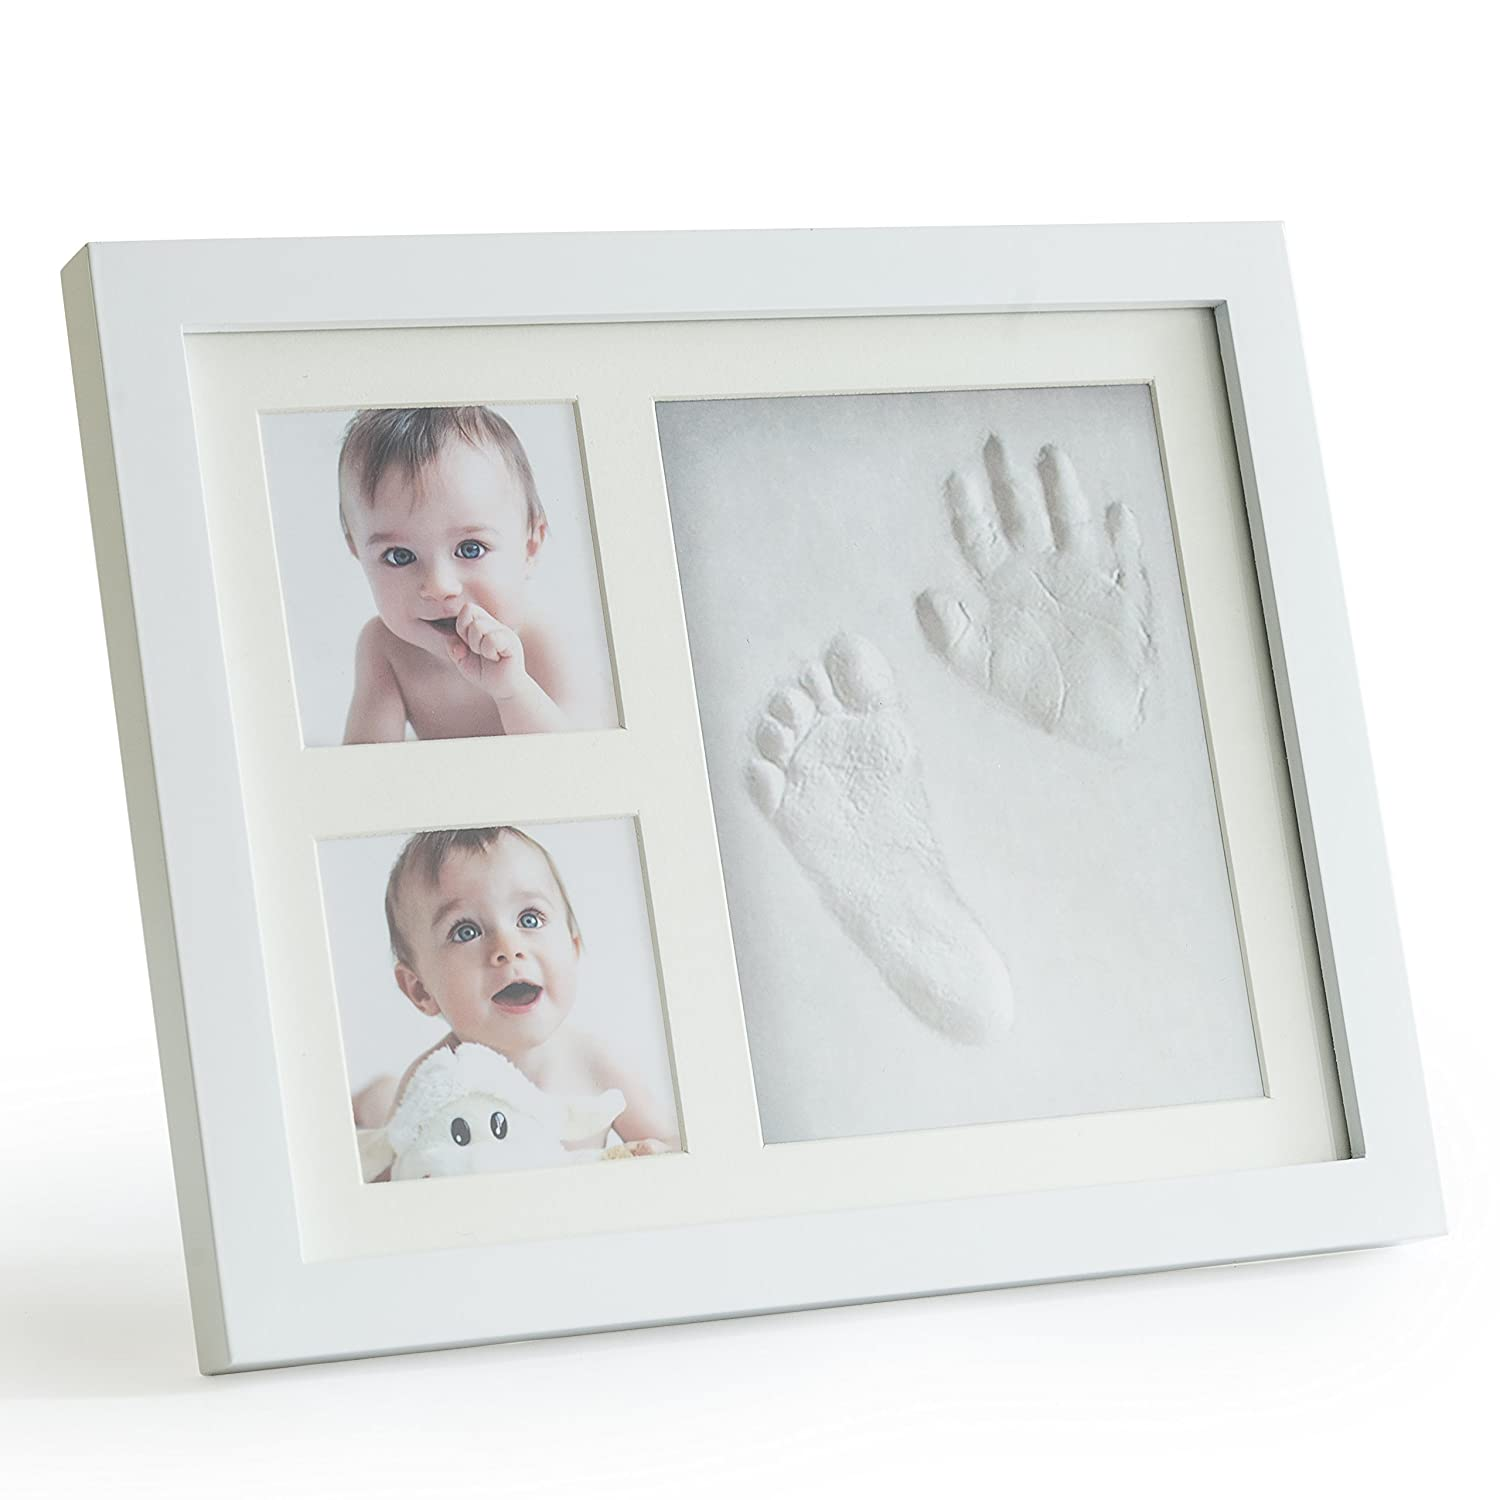 Amazon hand footprint makers baby products up raise premium clay baby footprint handprint picture frame kit safe and non jeuxipadfo Choice Image